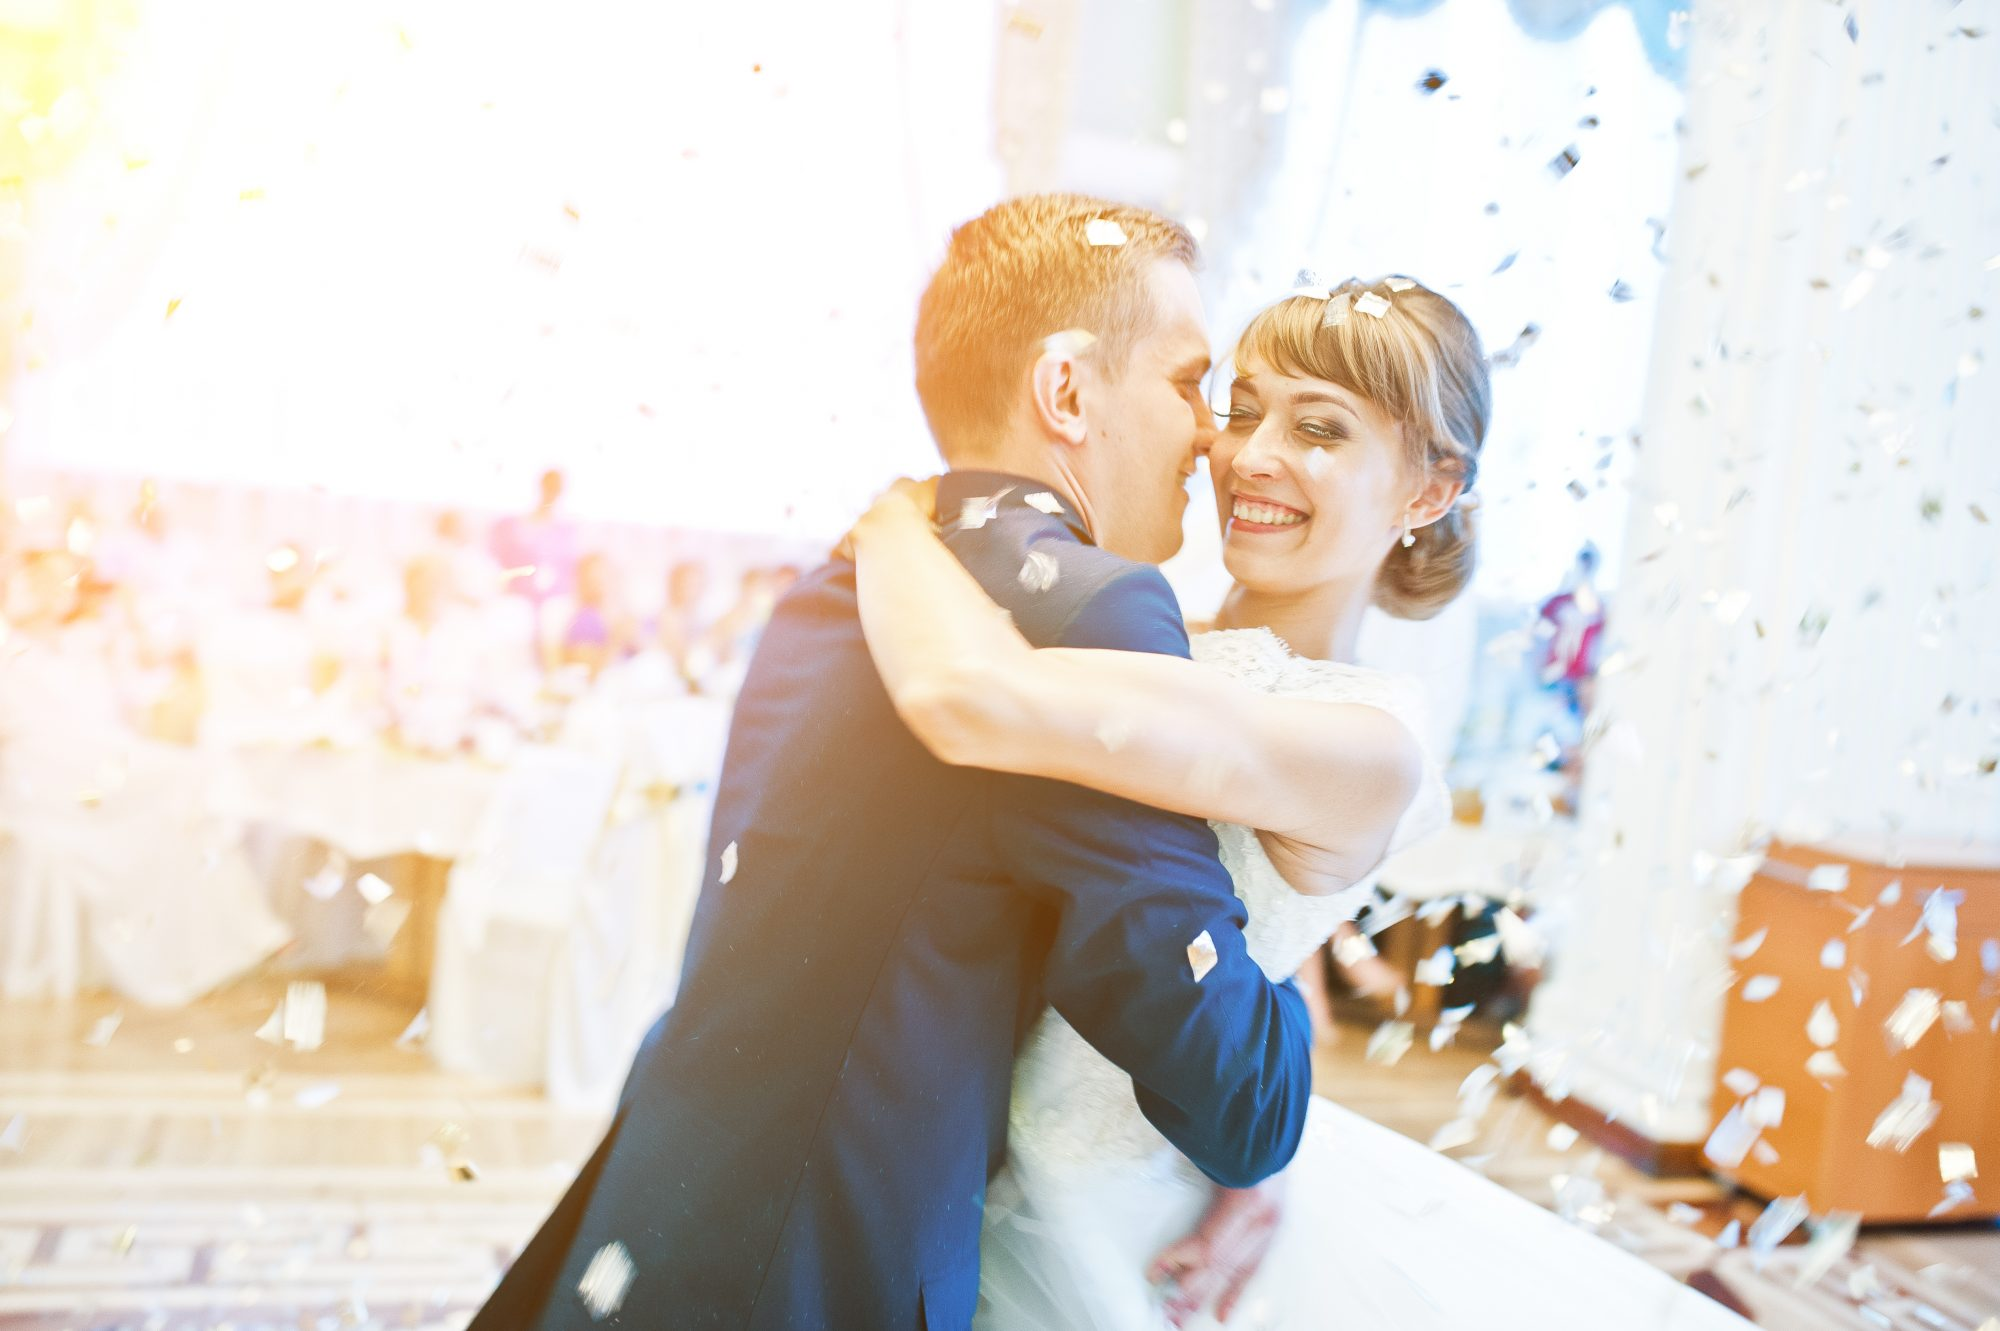 These Are the 15 Most Popular Wedding First Dance Songs